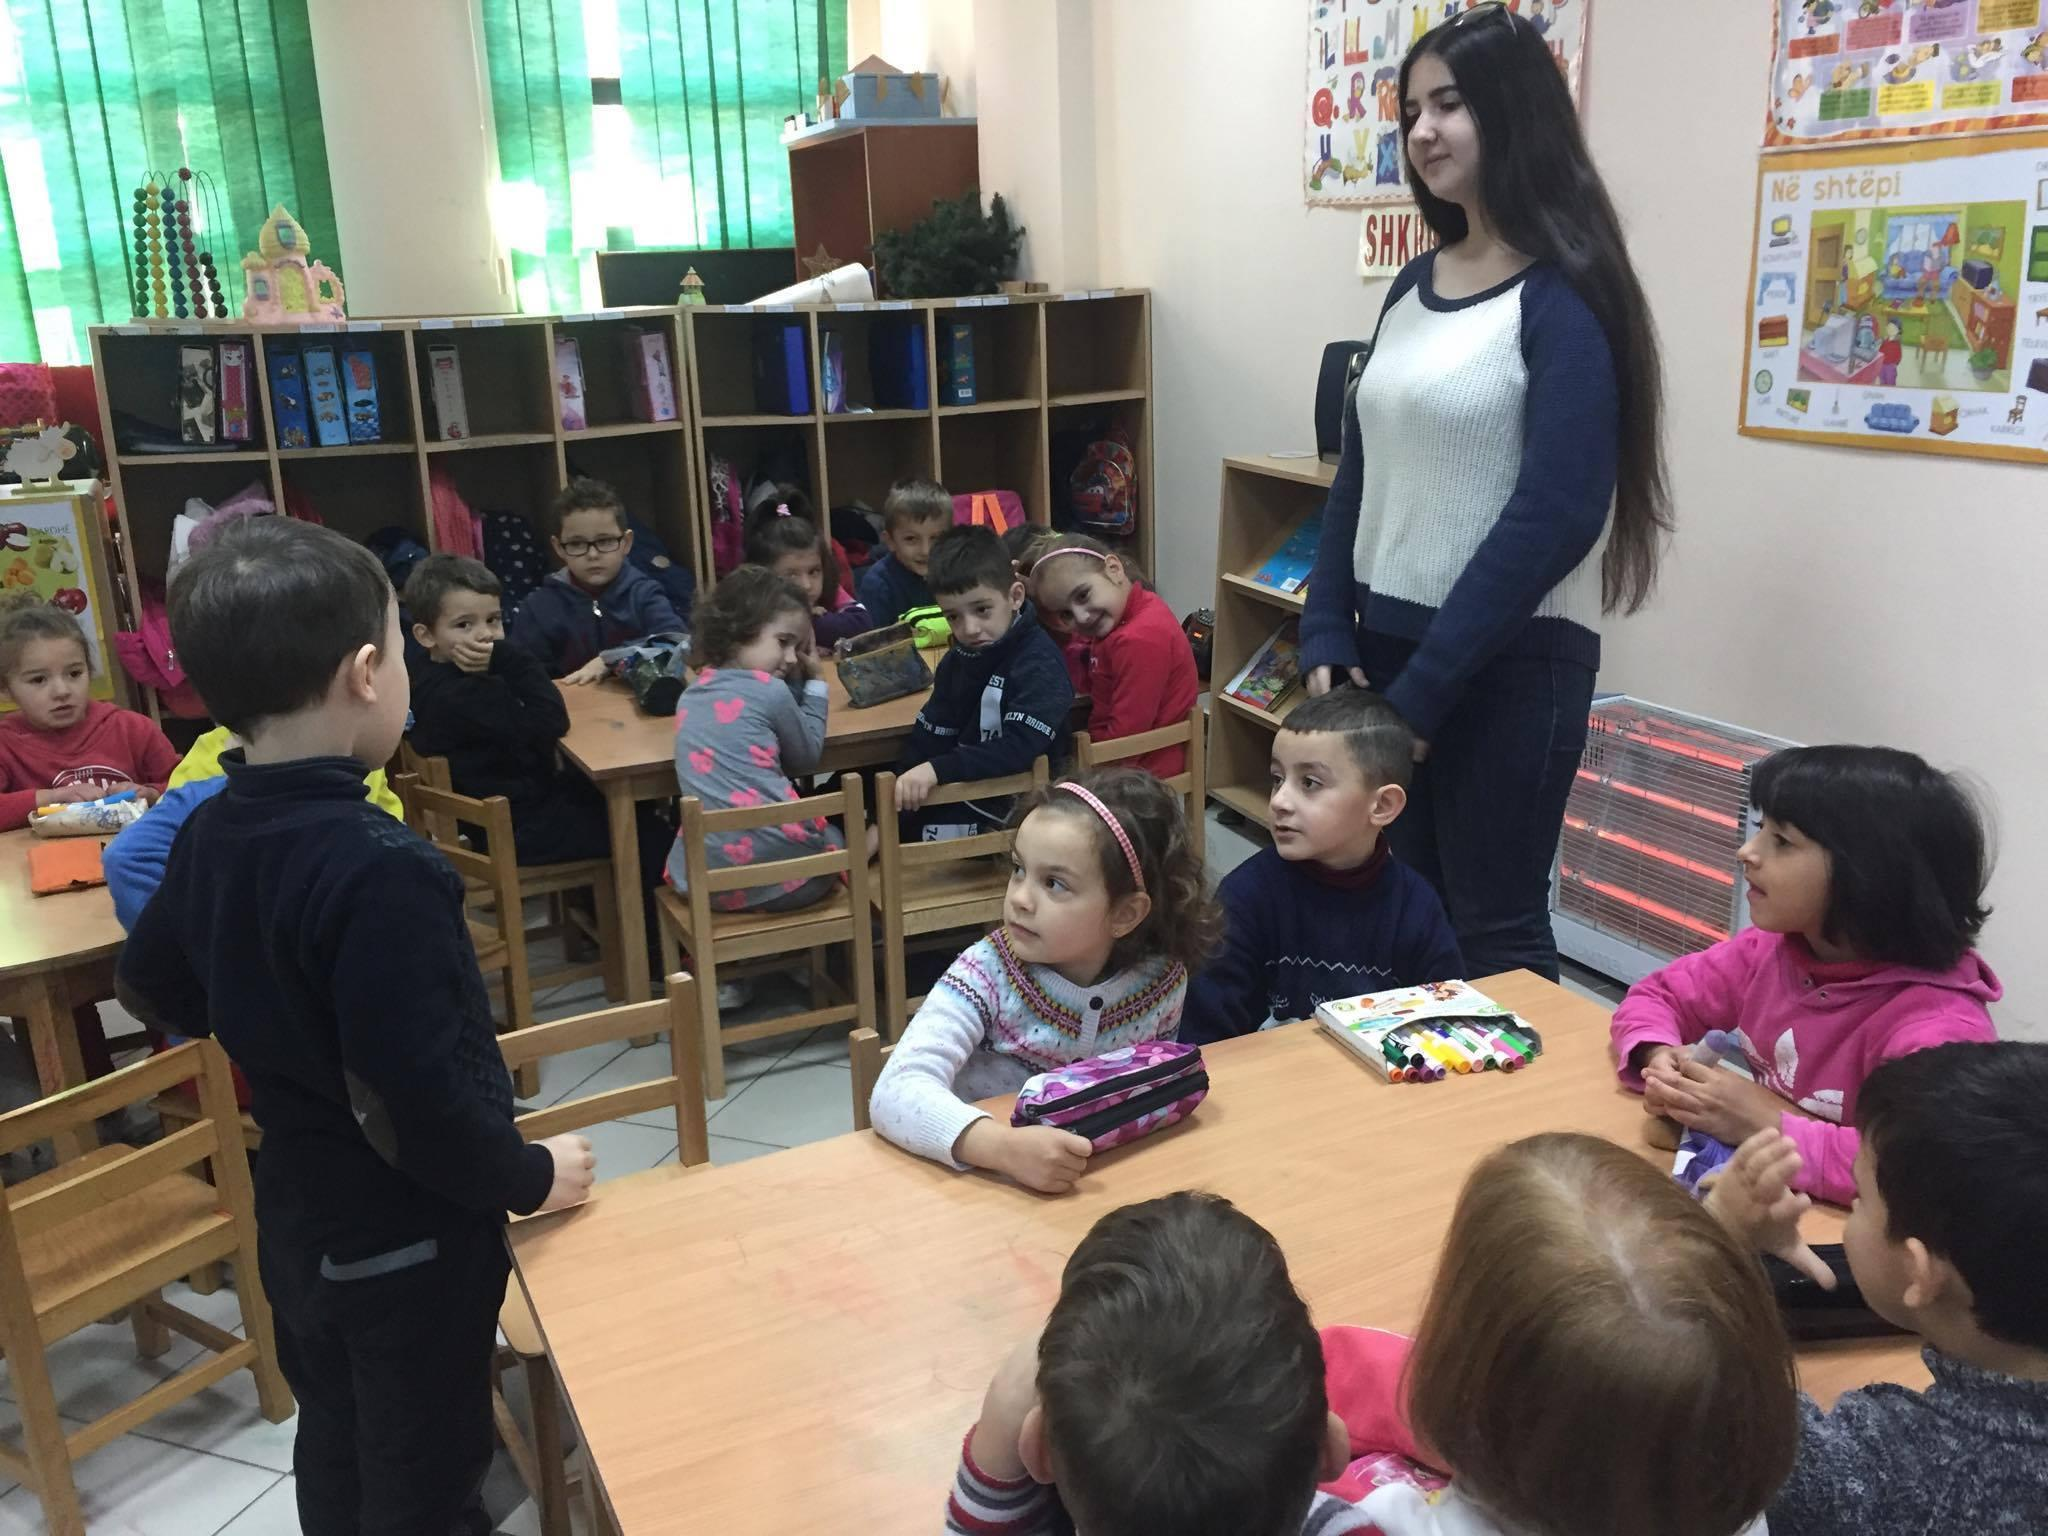 Albania Dea Shehu Yes Program 2017 Placed By Aces In Elkhart Indiana Holding Her First Activity At A Pre Elementary School